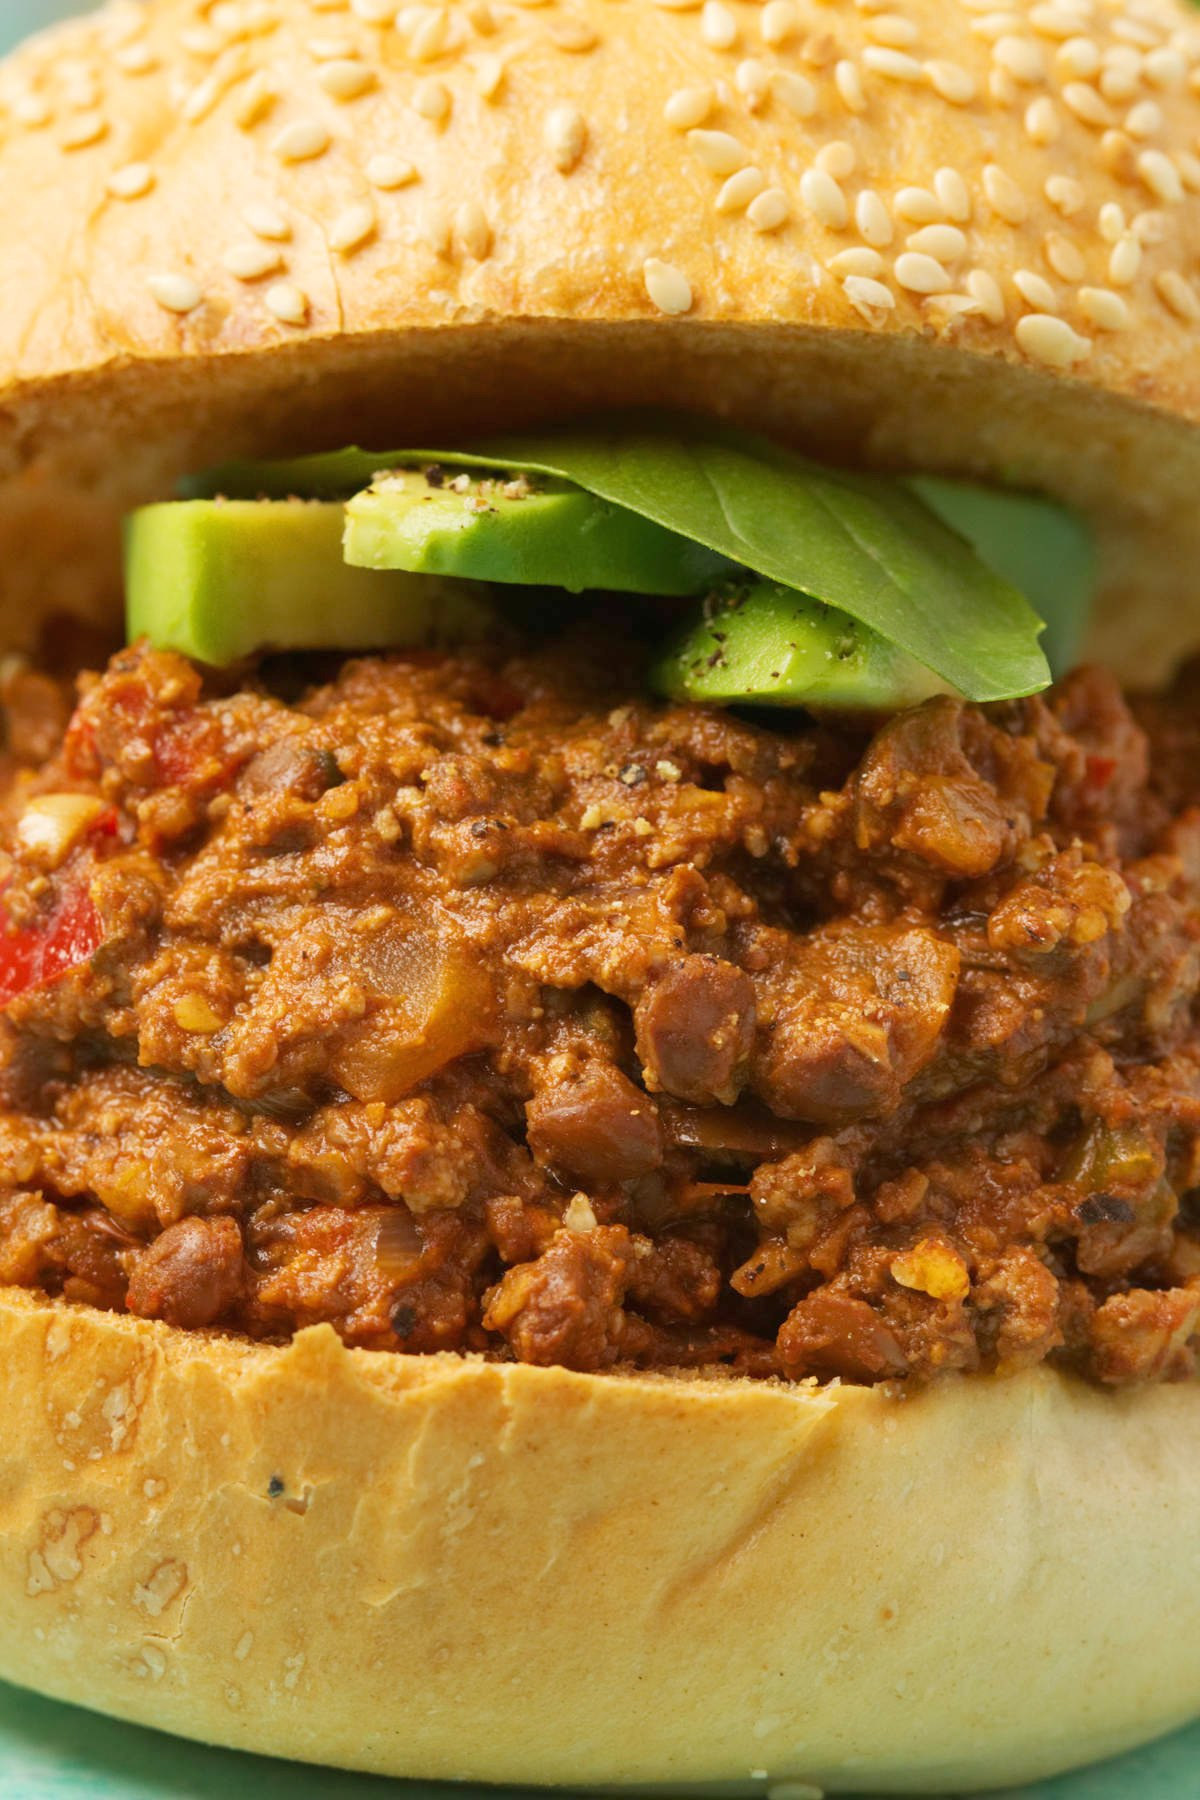 Vegan Sloppy Joe with sliced avocado and fresh basil.